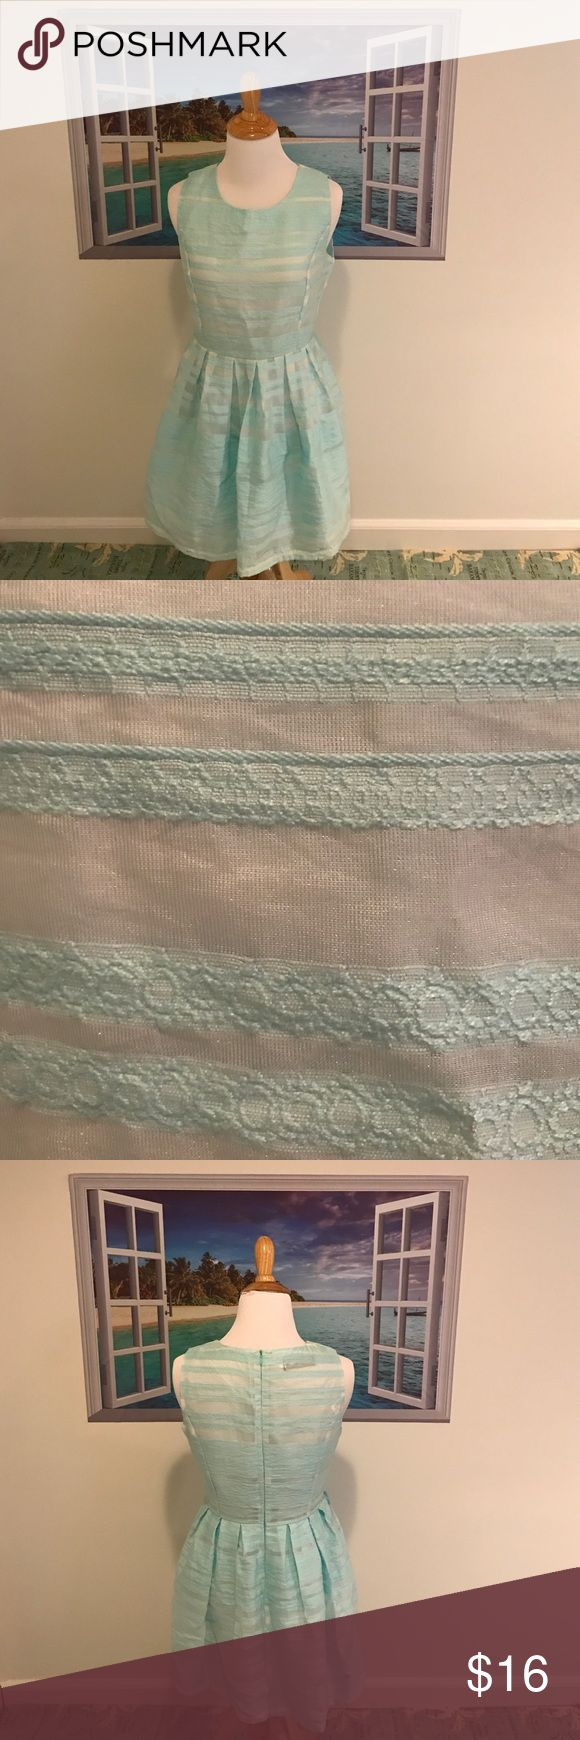 """Lovely Eyelet Dress Simply Lovely Eyelet Dress. Size:MJuniors. Gently used once. EUC. Color is a light blue/ turquoise & like a see thru white almost. Fully lined. Bra friendly. Back zip closure. Pleated detail. Great for a party or event! Length approx 30"""". NO TRADES. yang wen Dresses"""